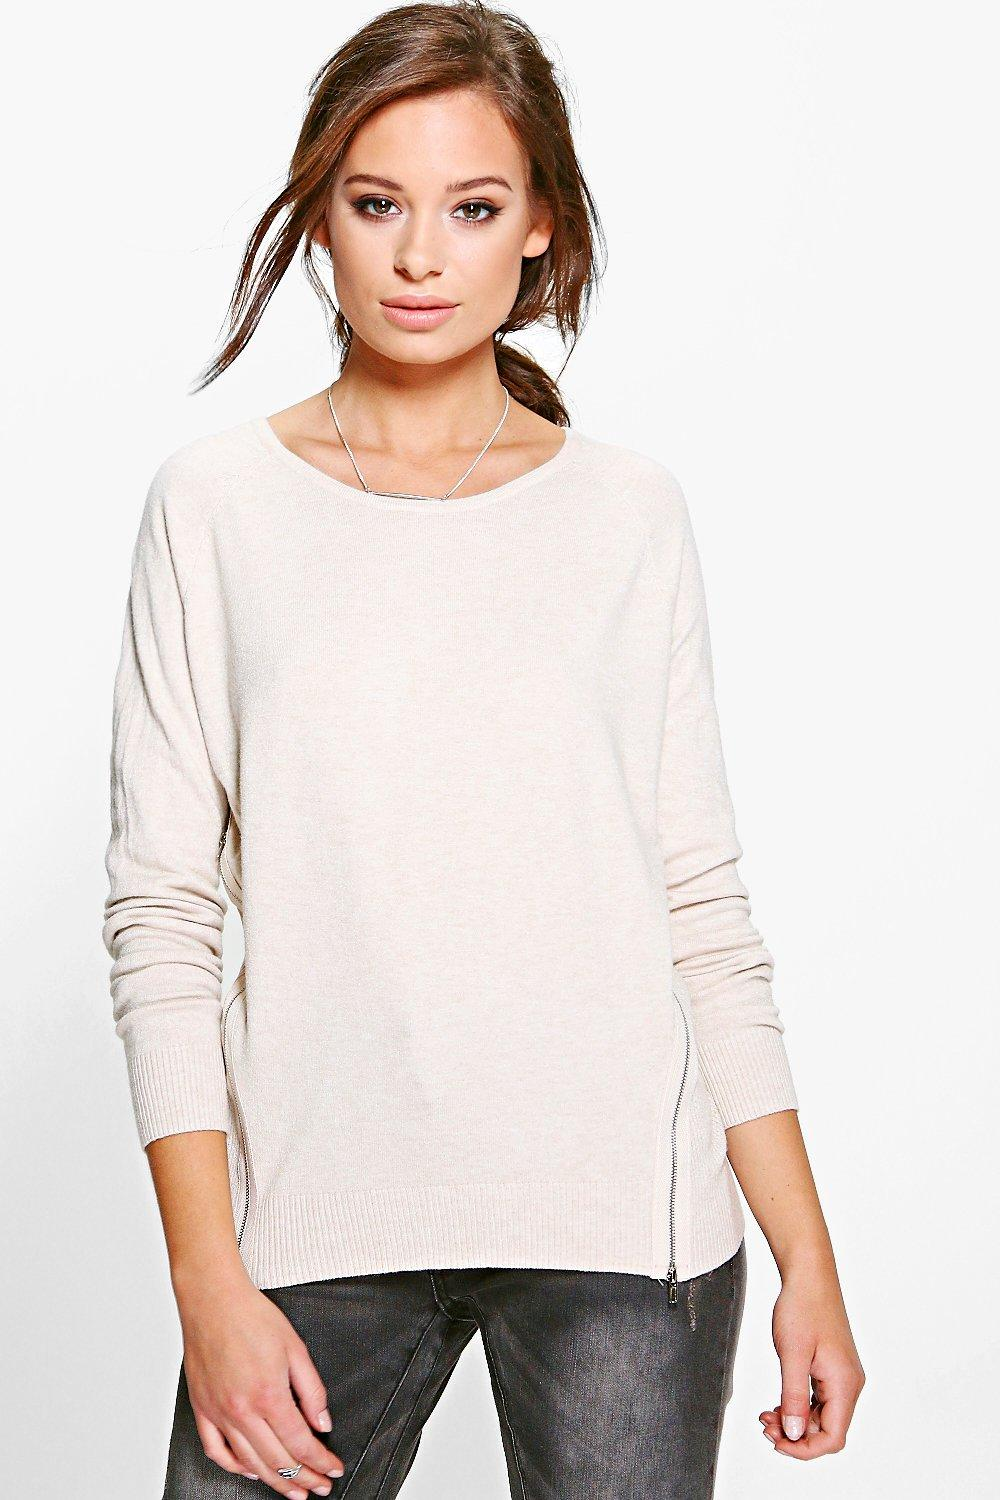 Brooke Long Sleeve Knitted Top With Zips